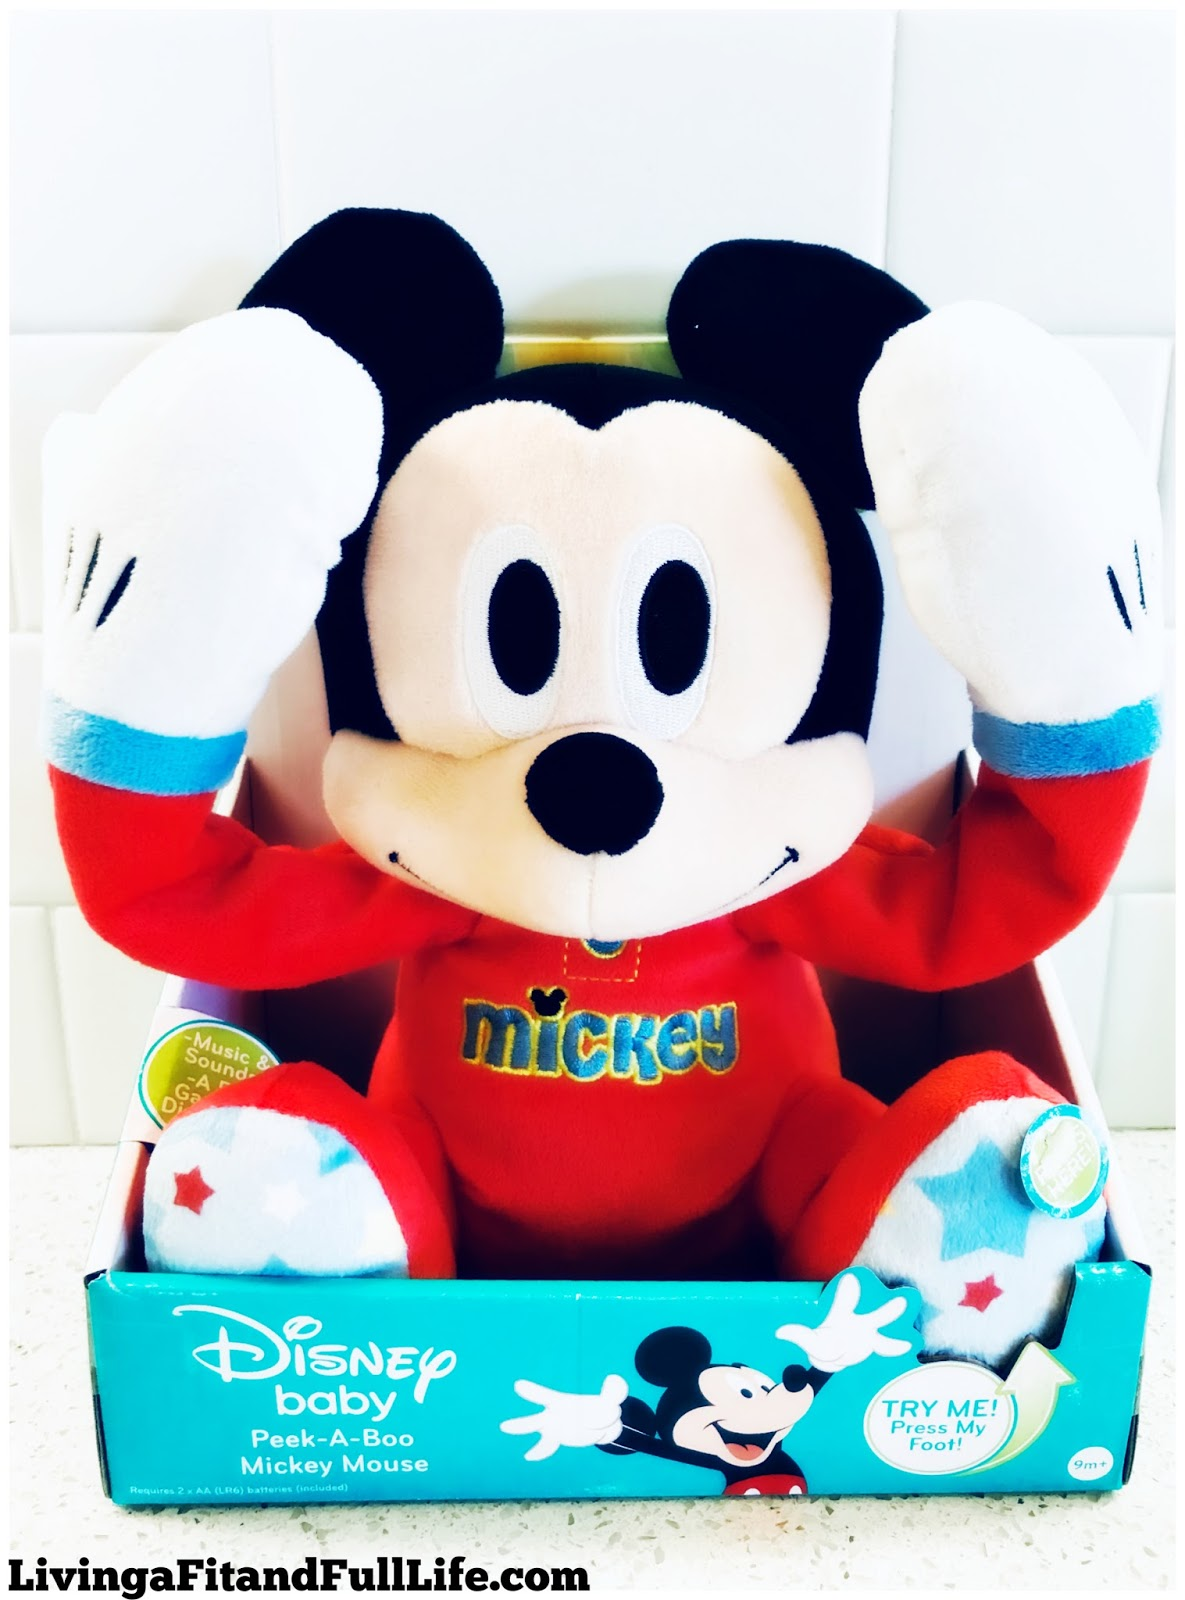 Living A Fit And Full Life Disney Baby Peek A Boo Mickey Mouse And